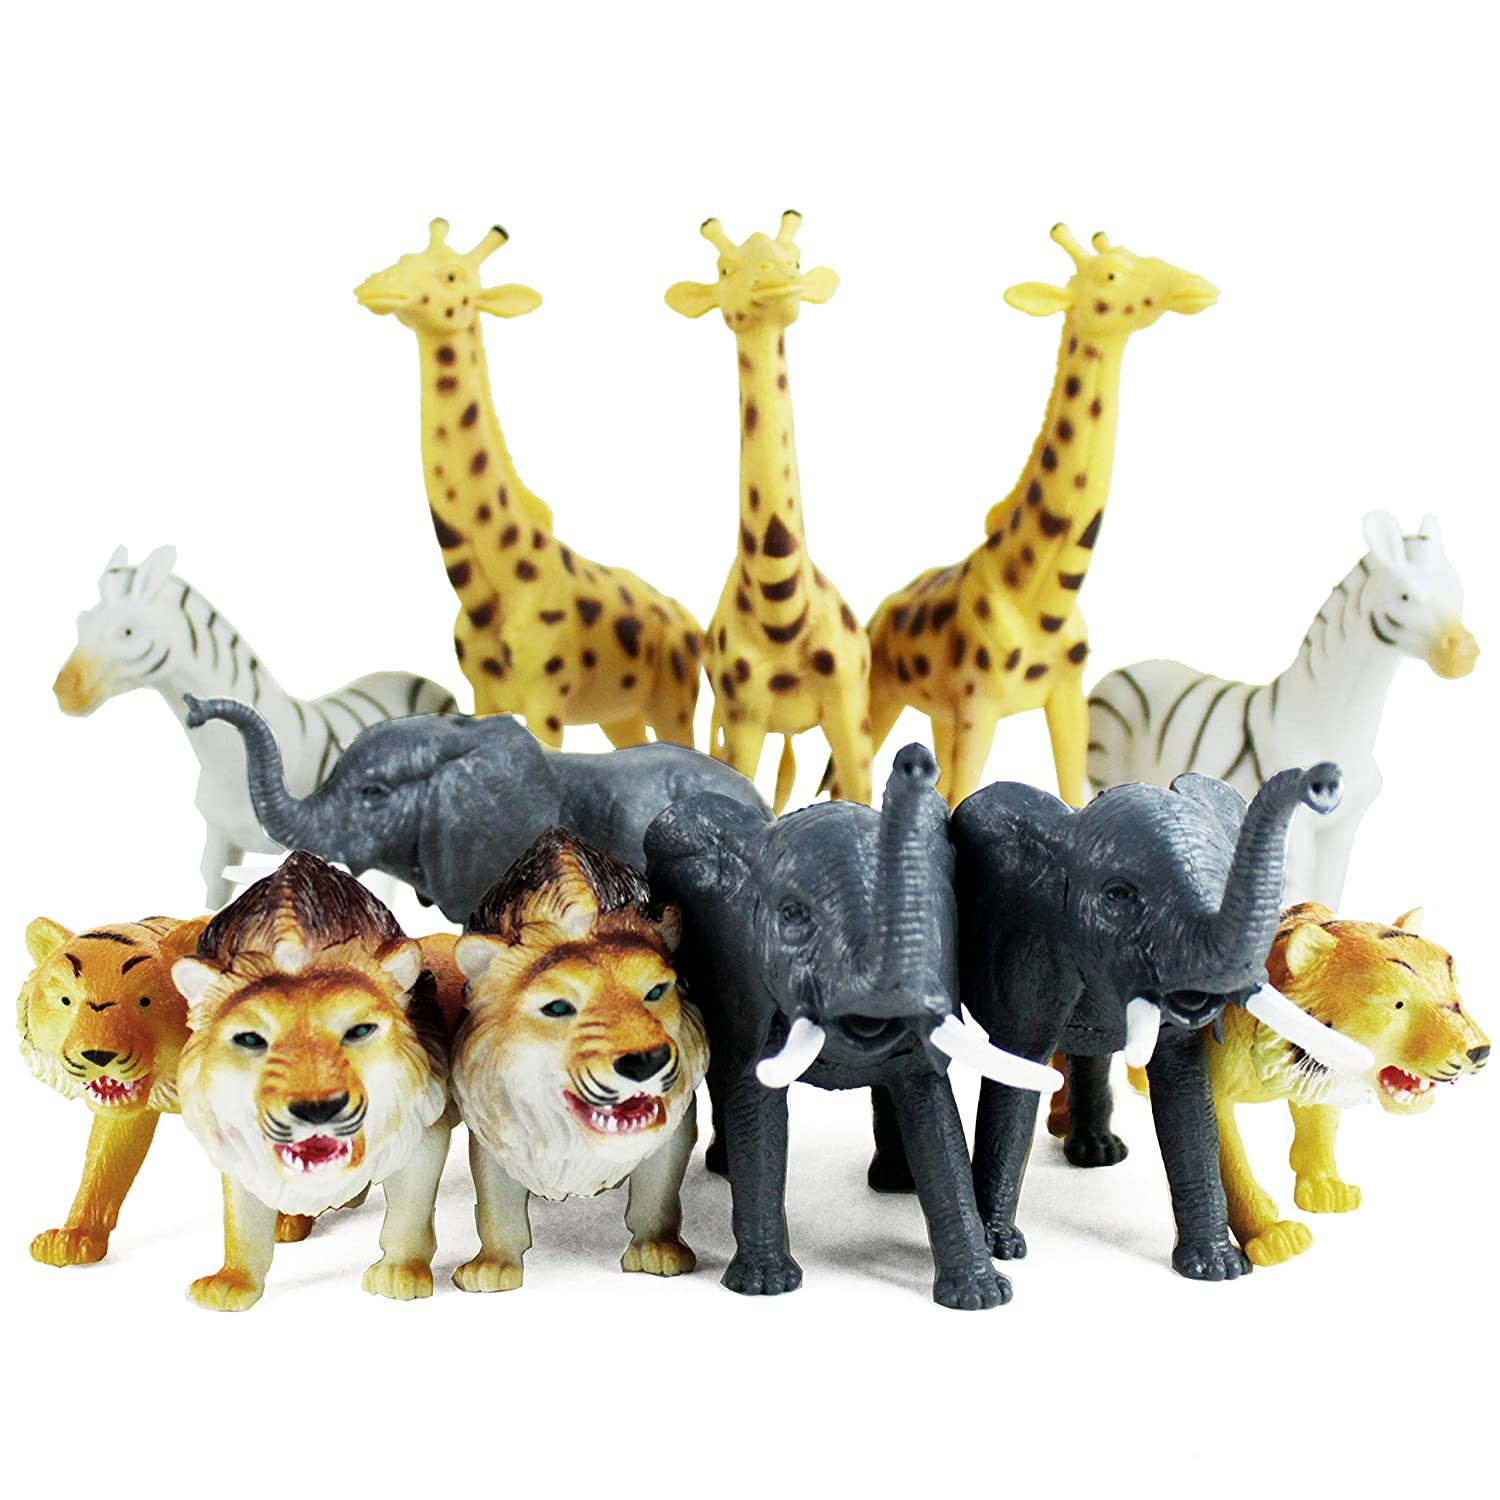 Boley 12 Piece Jumbo Safari Animals - 9 Jungle Animals and Zoo Animals - Great Educational Toy for Toddlers